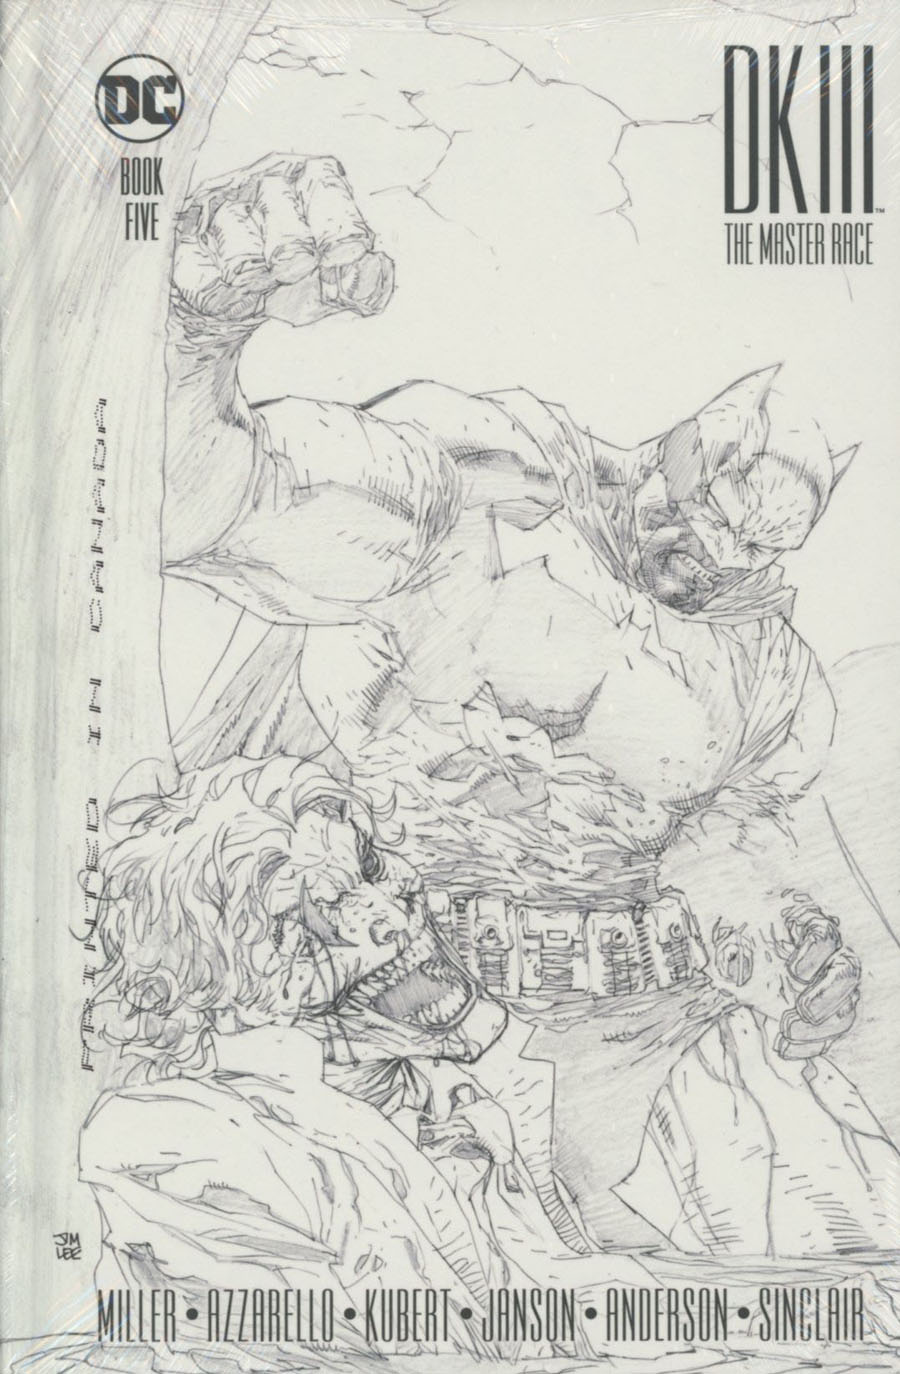 Dark Knight III The Master Race #5 Cover D Collectors Edition HC